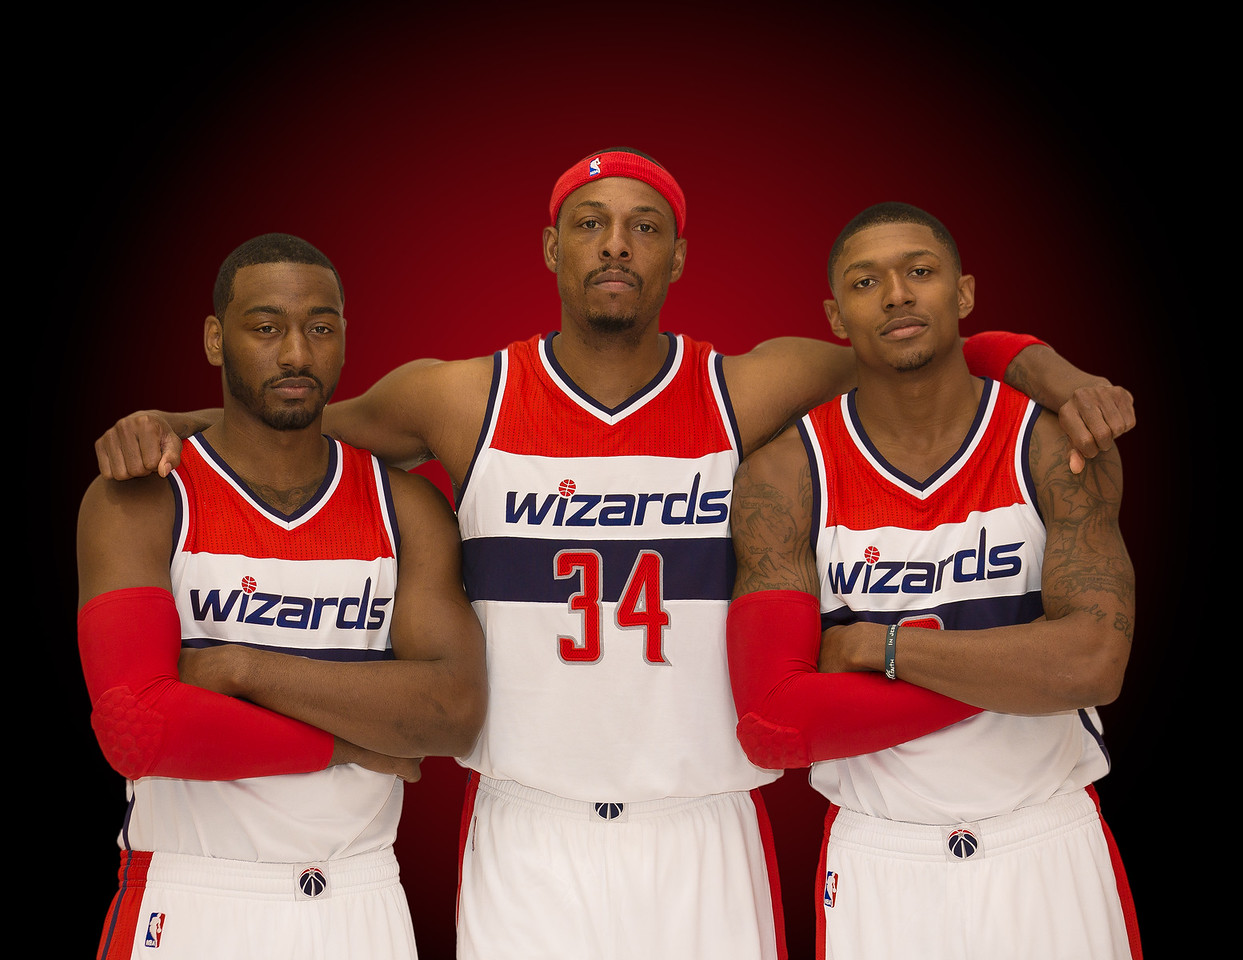 2 John Wall<br /> 34 Paul Pierce<br /> 3 Bradley Beal